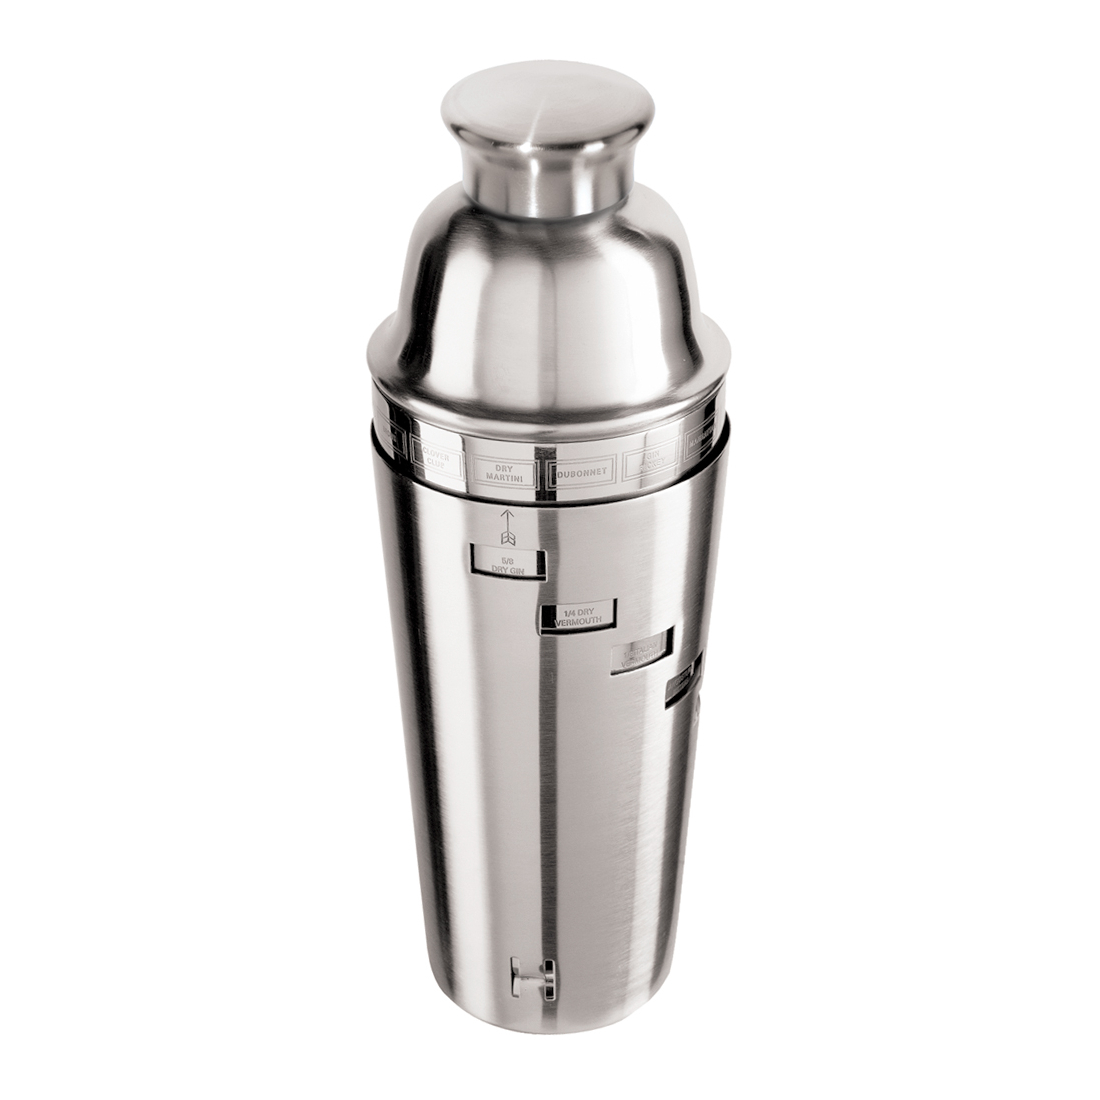 Stainless Steel Dial a Drink Cocktail Shaker w/ Recipes